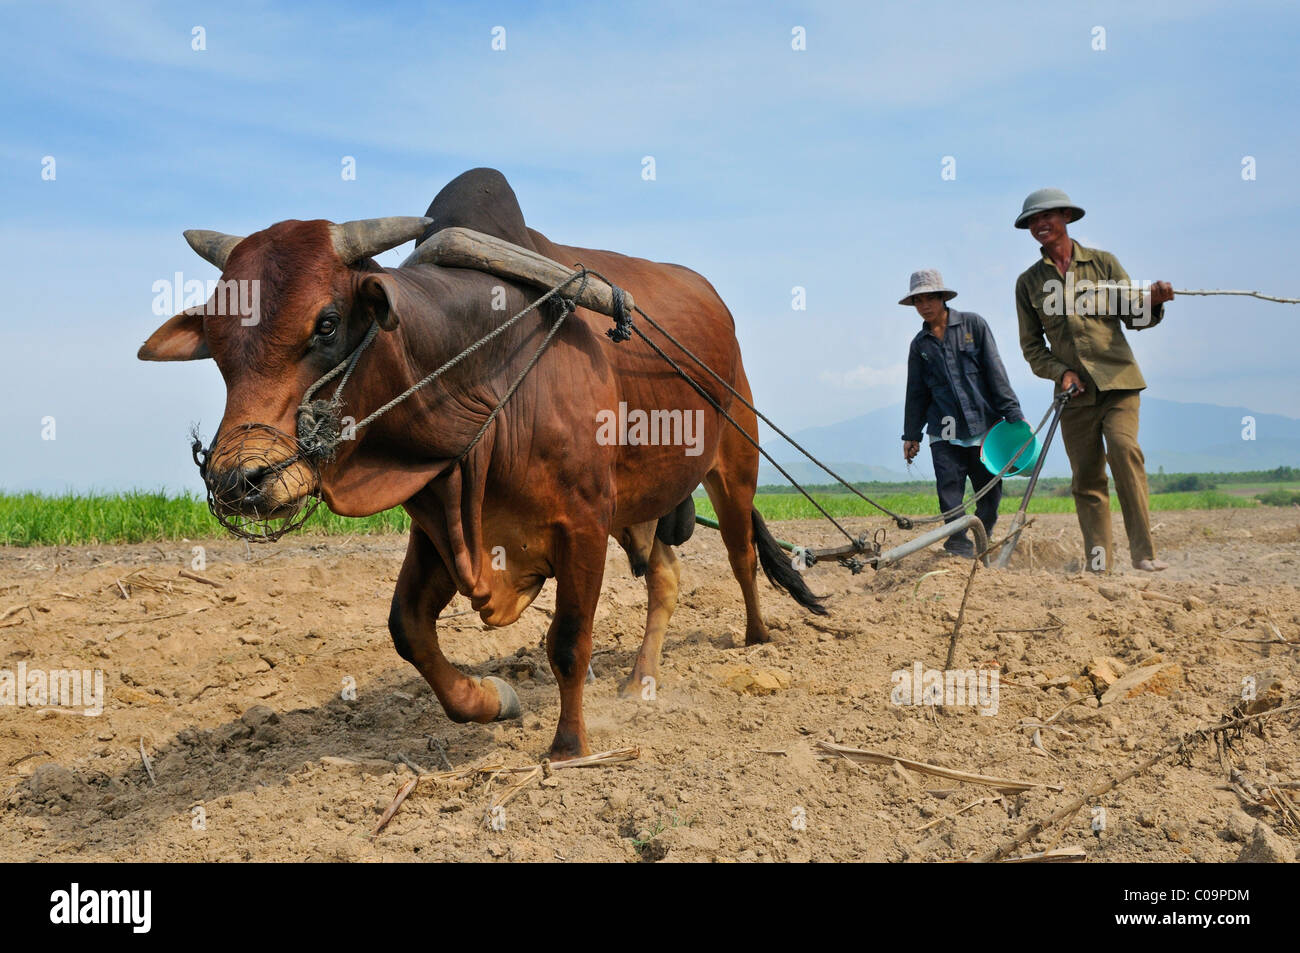 Two men with ox-cart seeding sugar cane, Vietnam, Southeast Asia - Stock Image